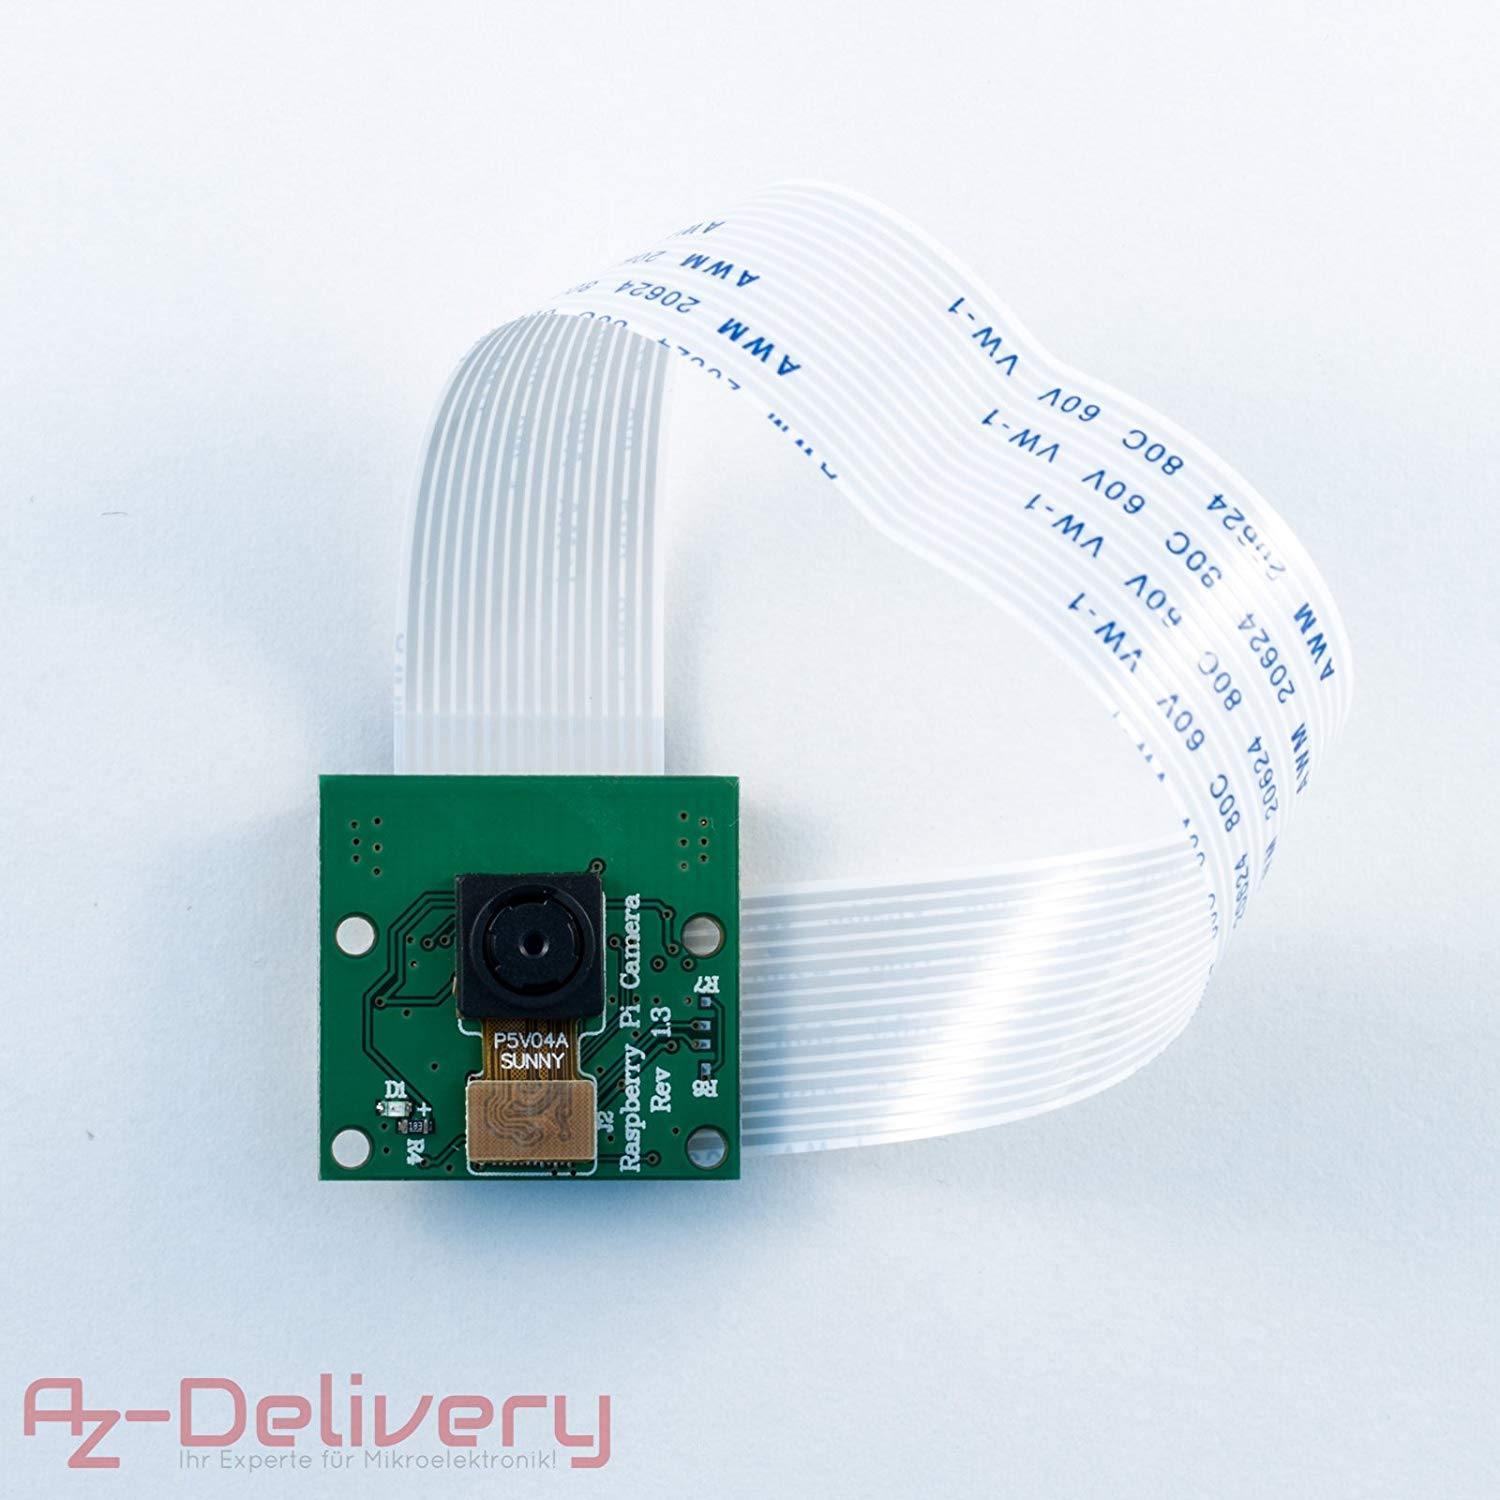 AZDelivery Camera Module V 1.3 1080p 5 Megapixels for Raspberry Pi Model A and B Including Free eBook!